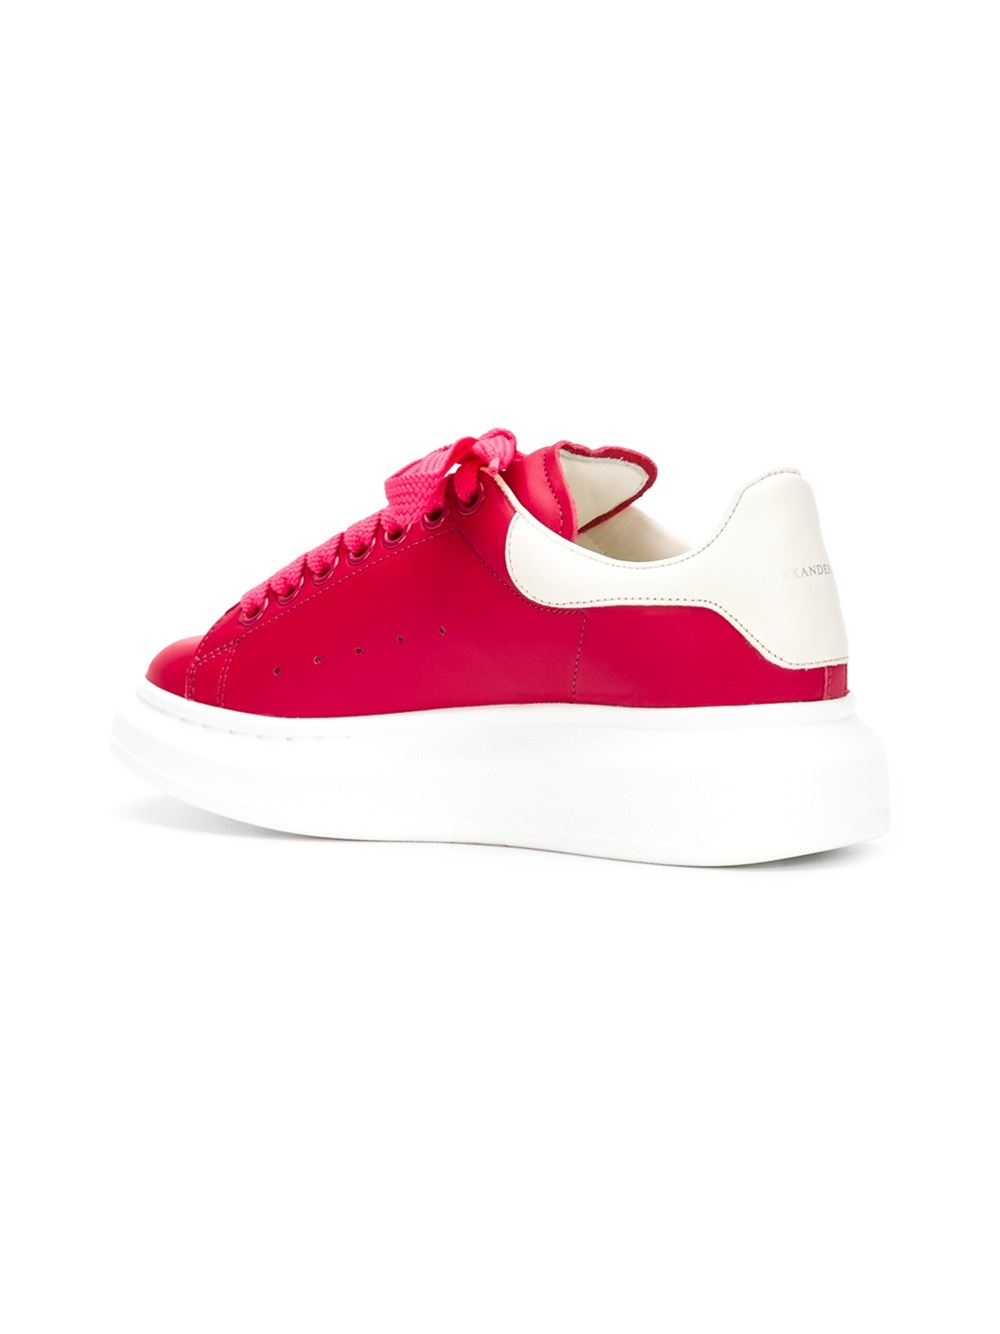 Alexander Mcqueen Extended Sole Sneakers In Red Lyst